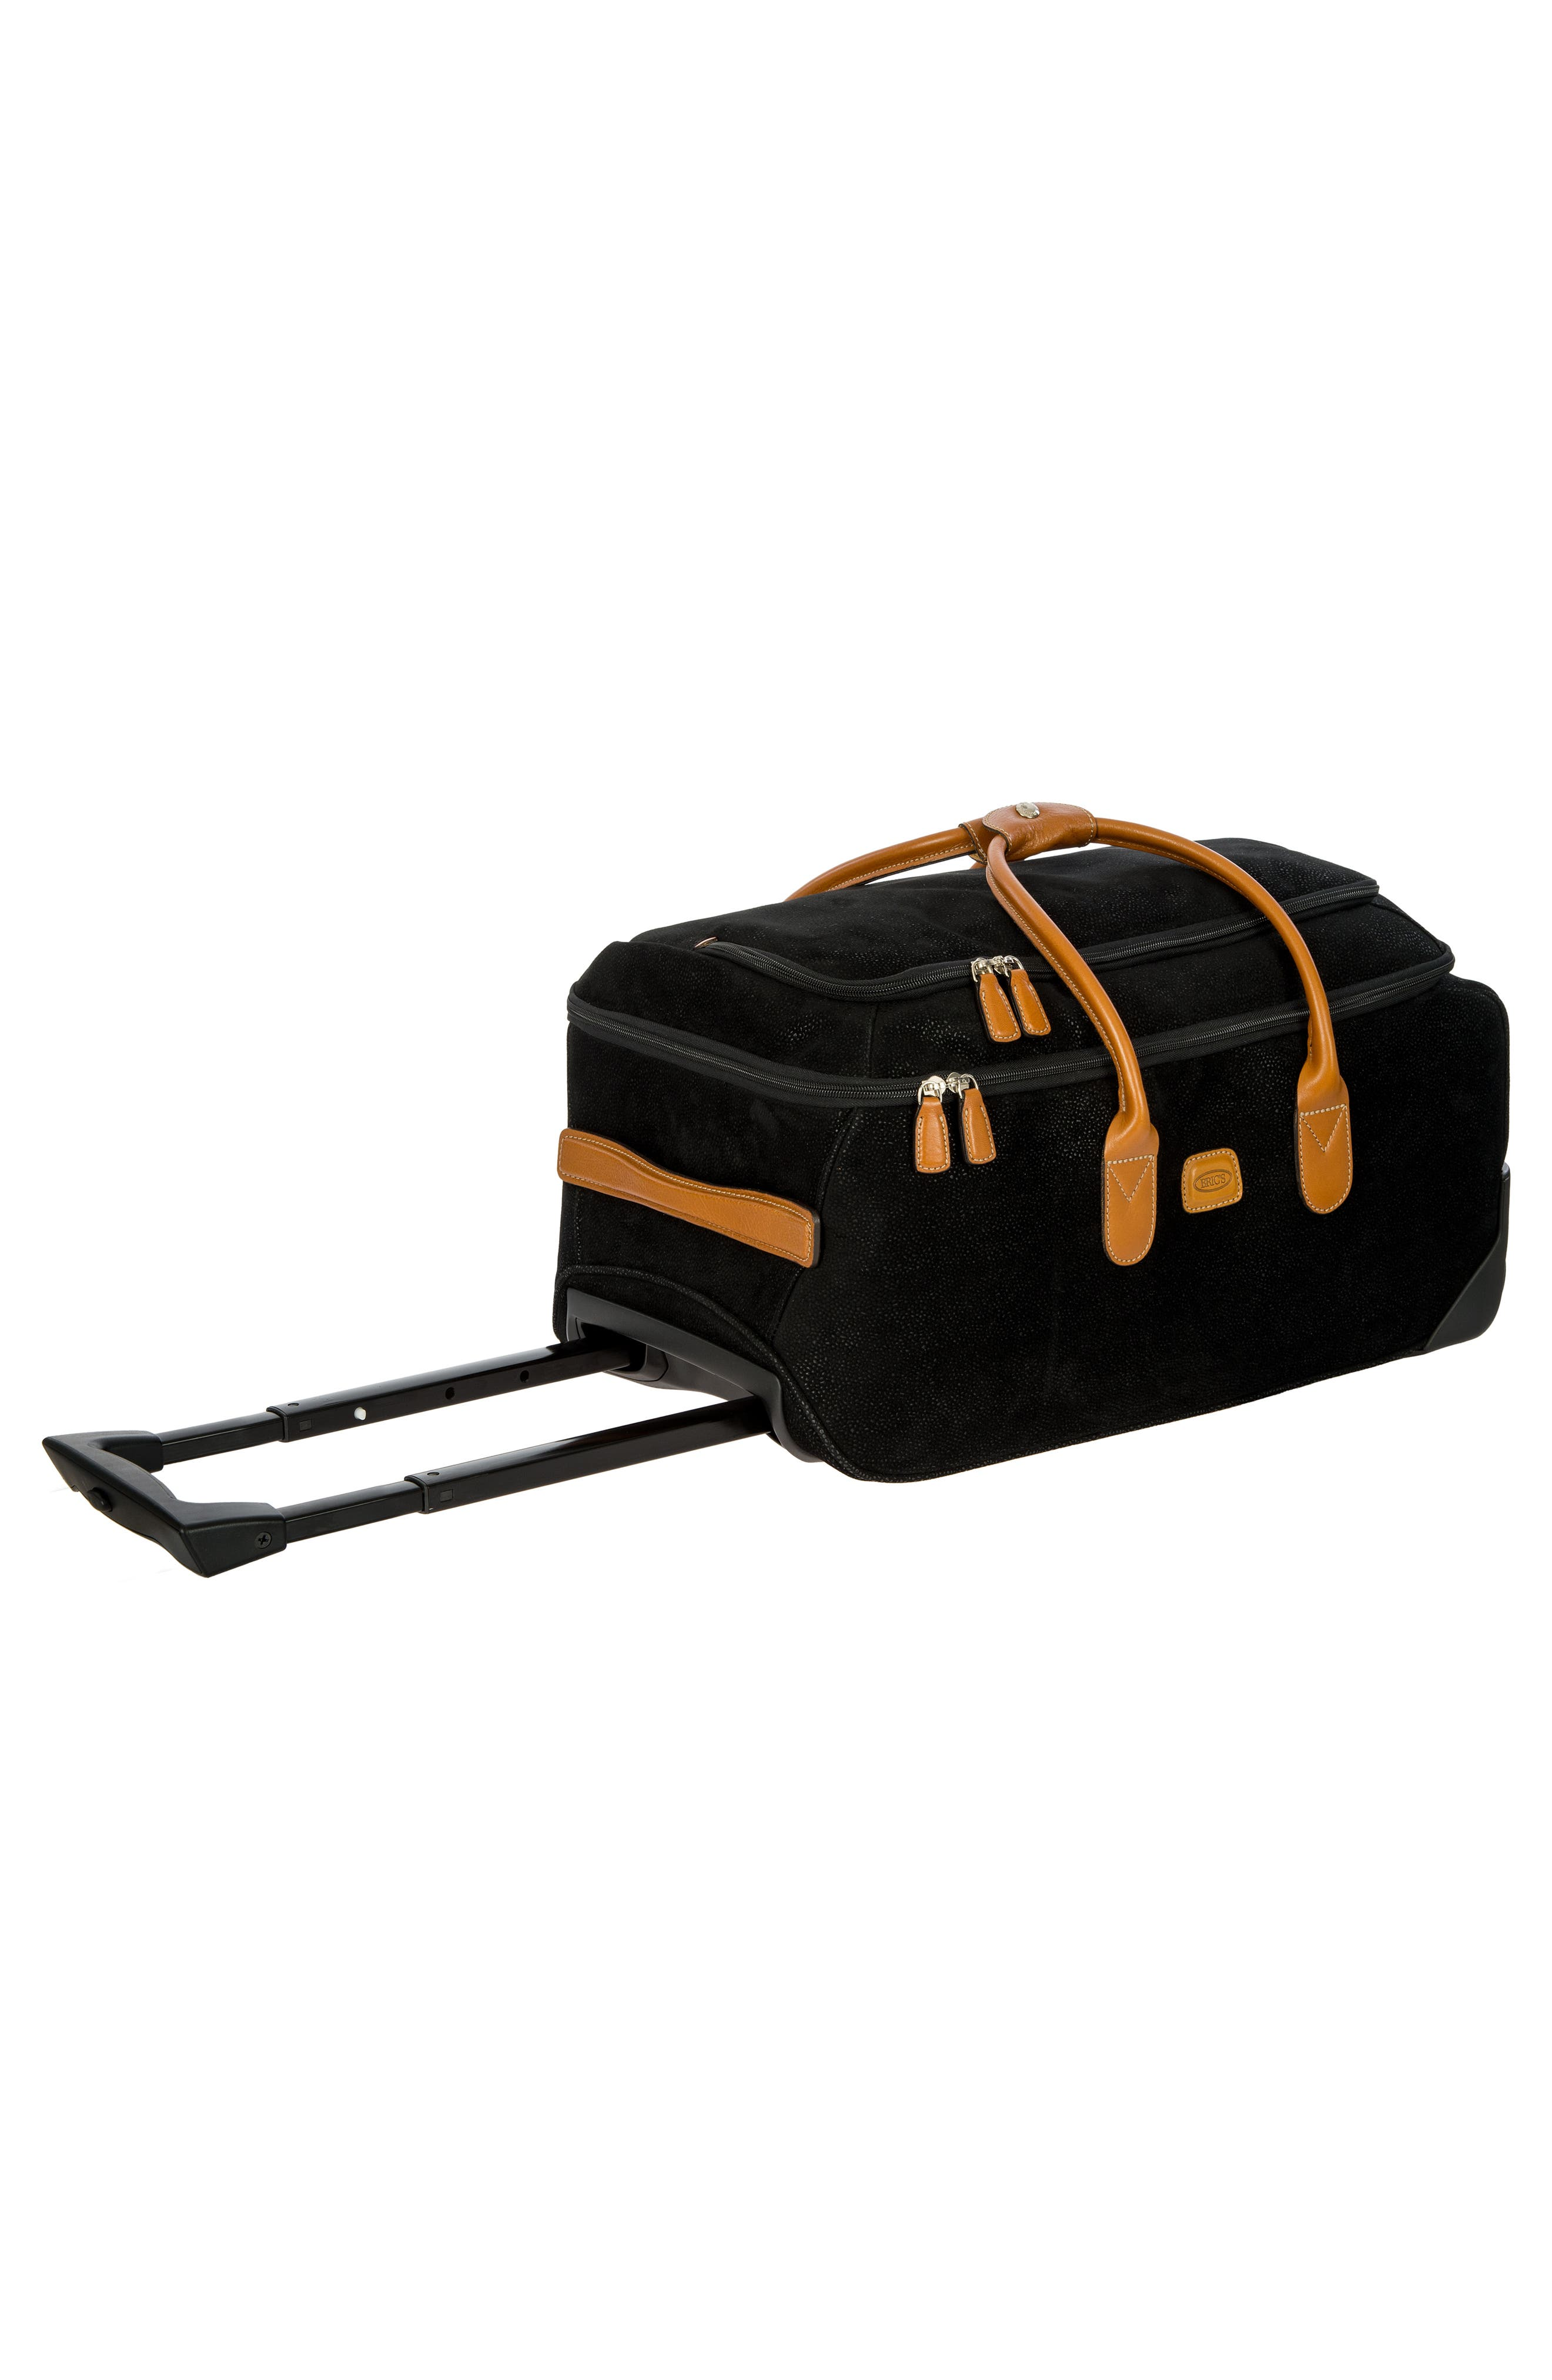 Life Collection 21-Inch Rolling Duffel Bag,                             Alternate thumbnail 4, color,                             Black